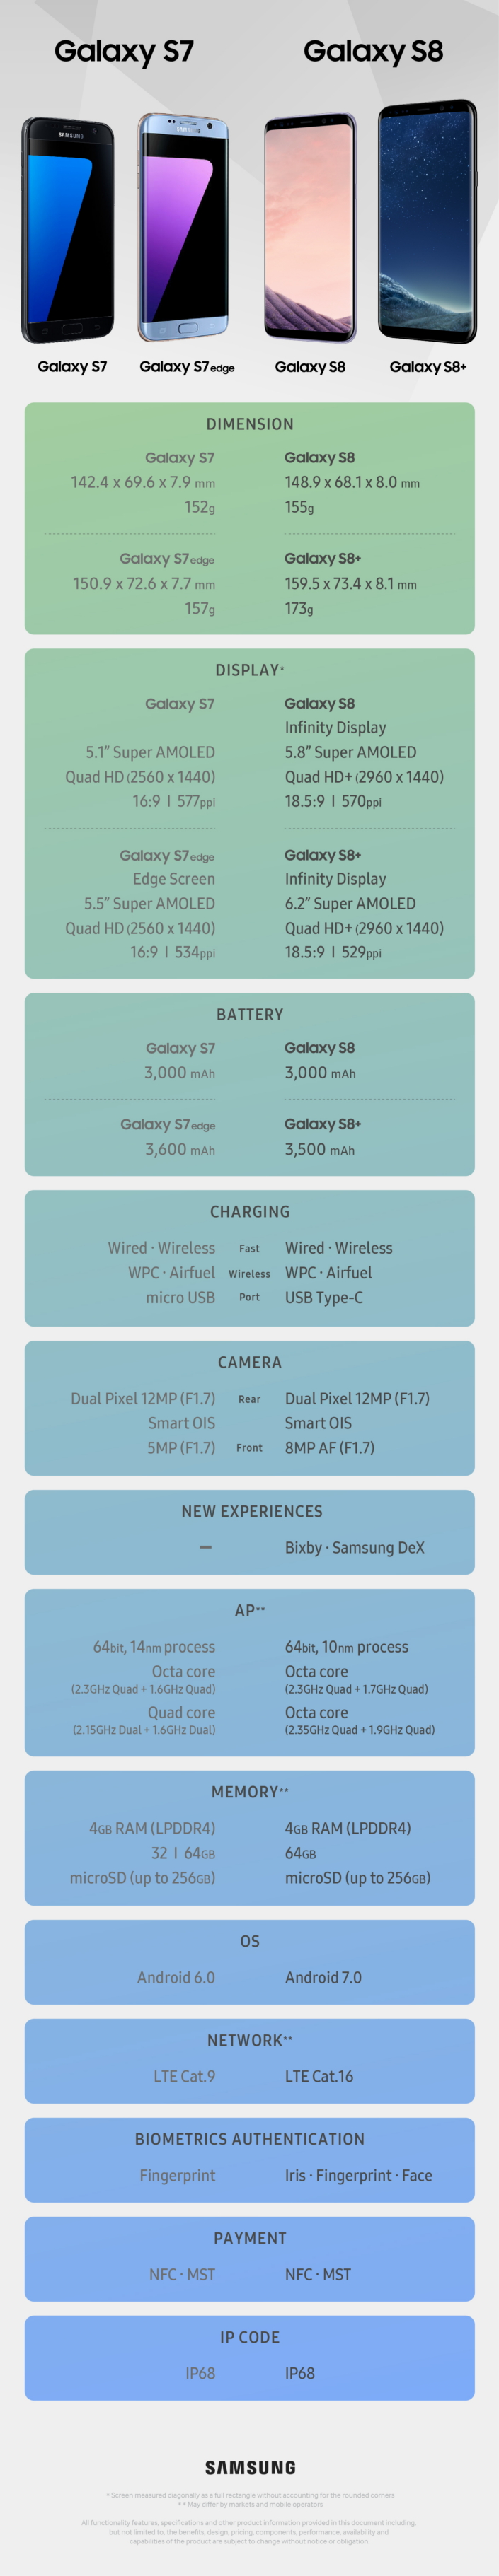 which is compatible with all Samsung QLED